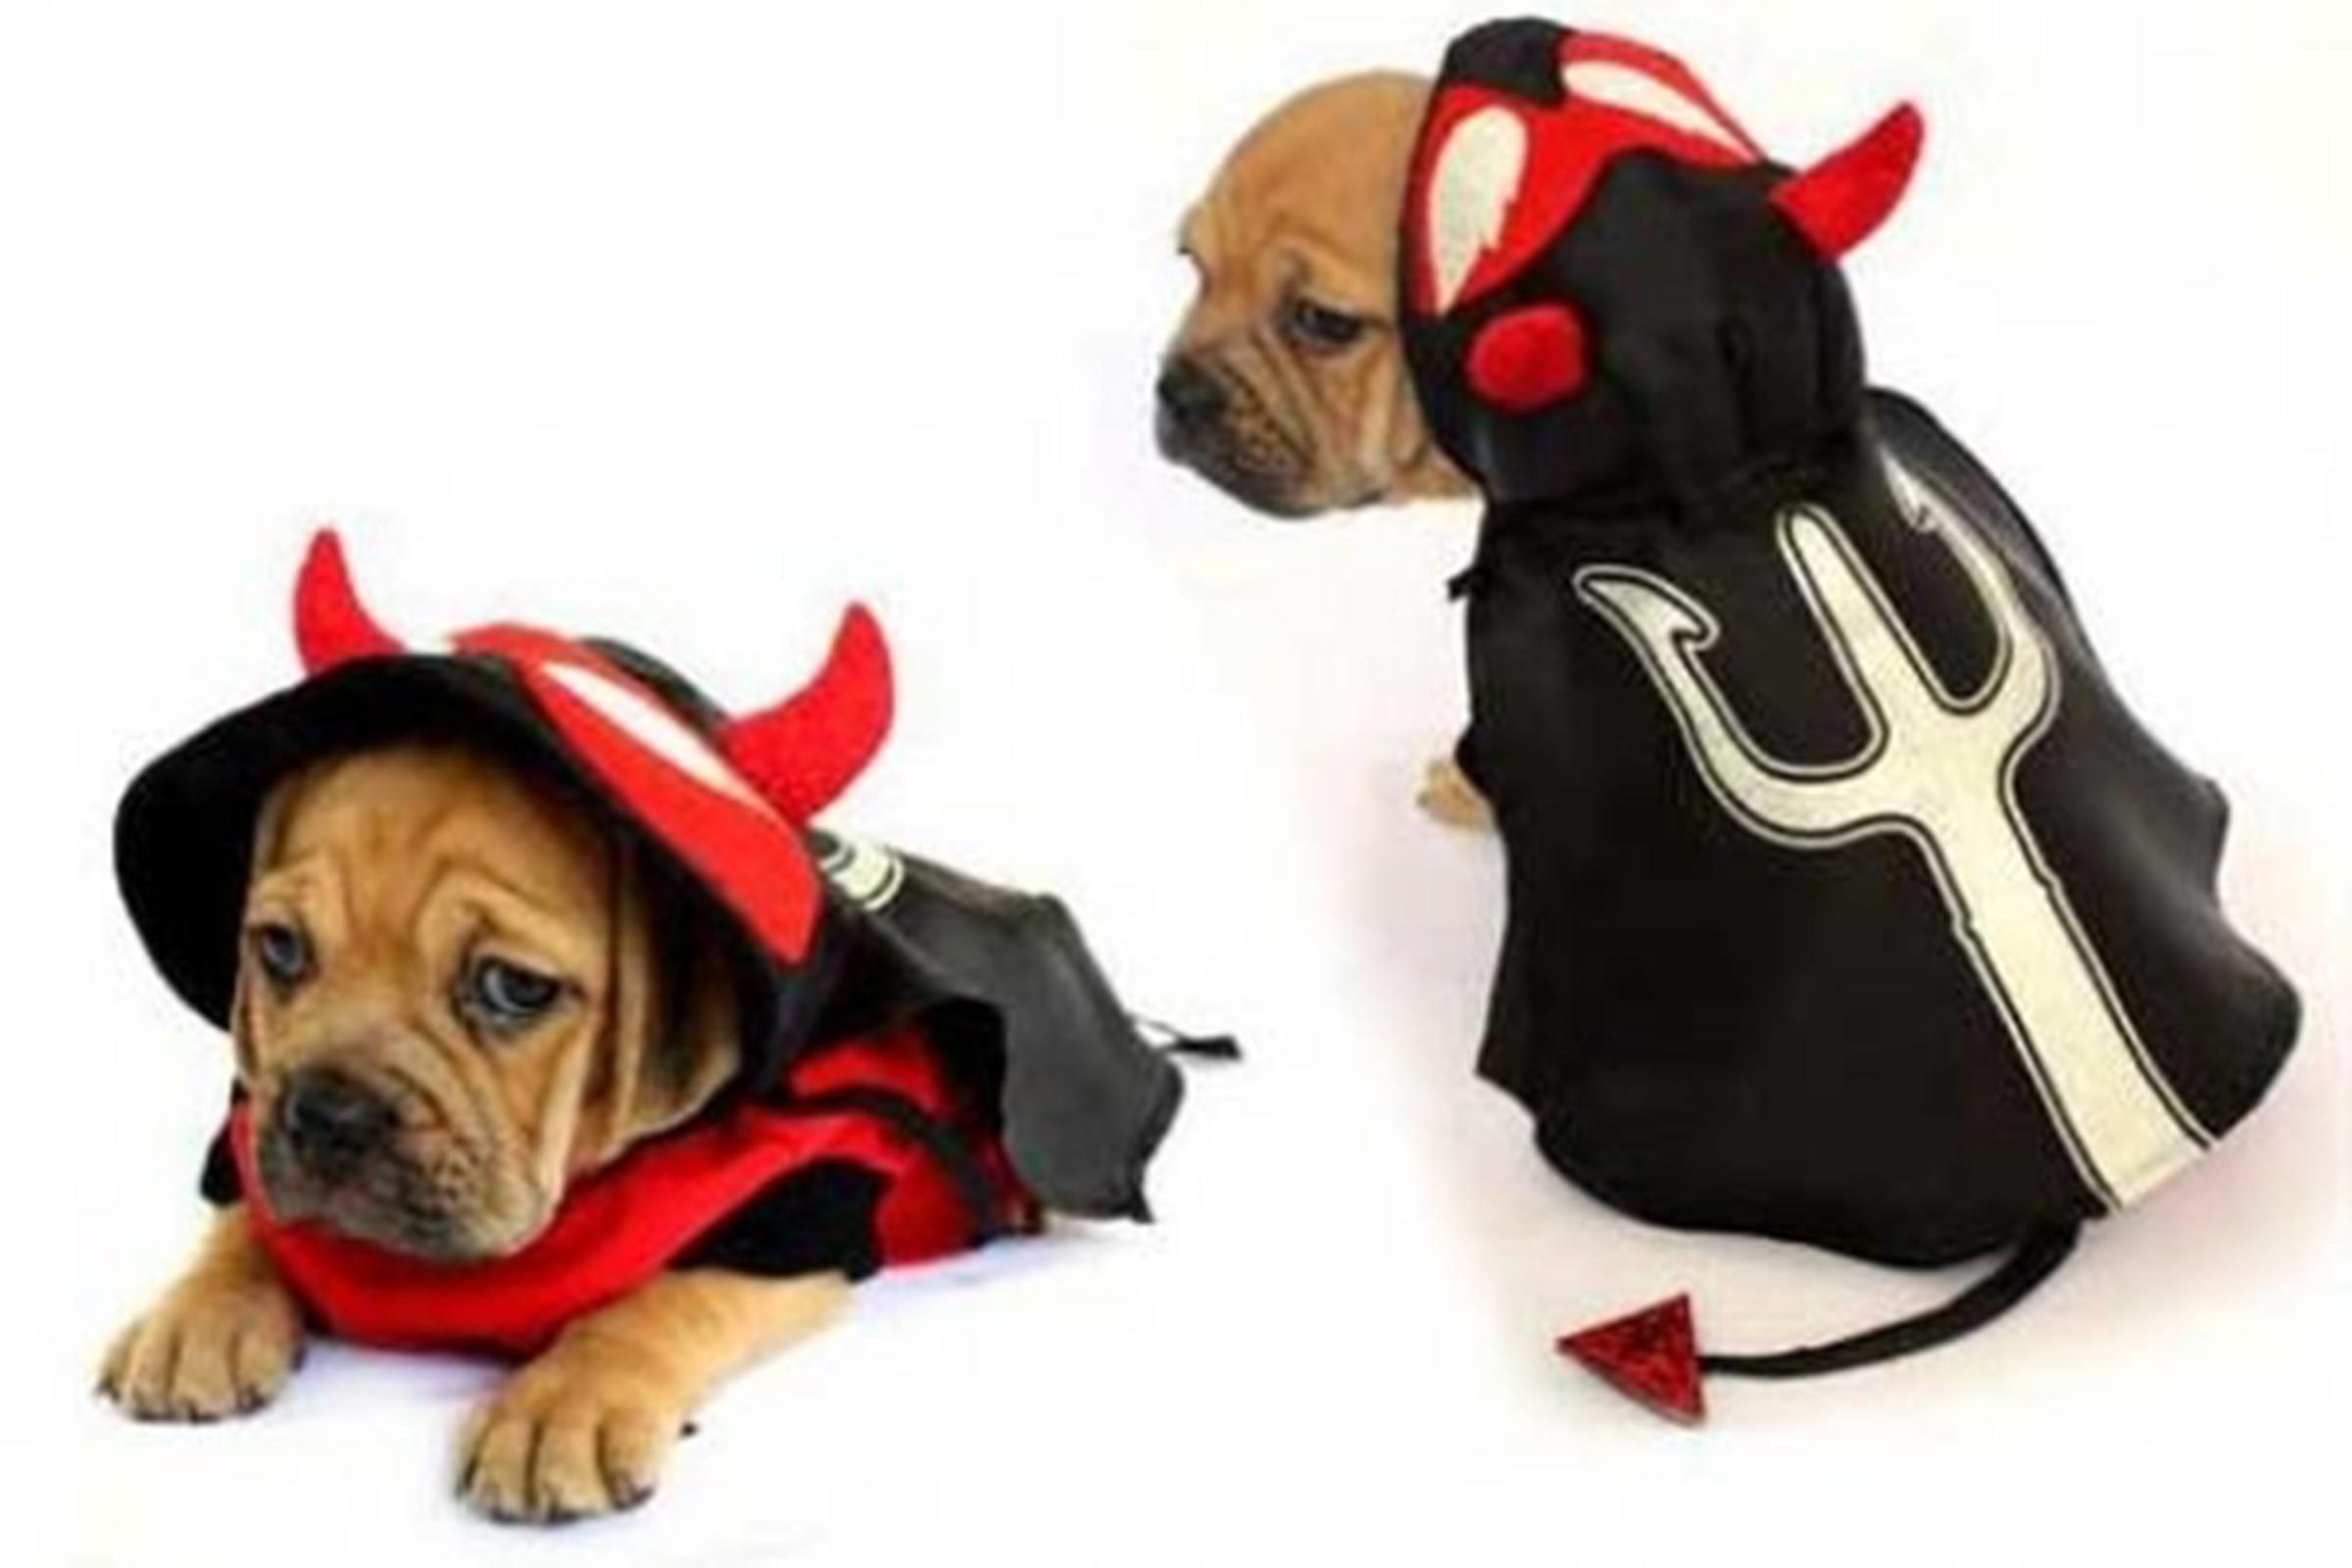 dog halloween costumes: best halloween costumes for dogs | reader's